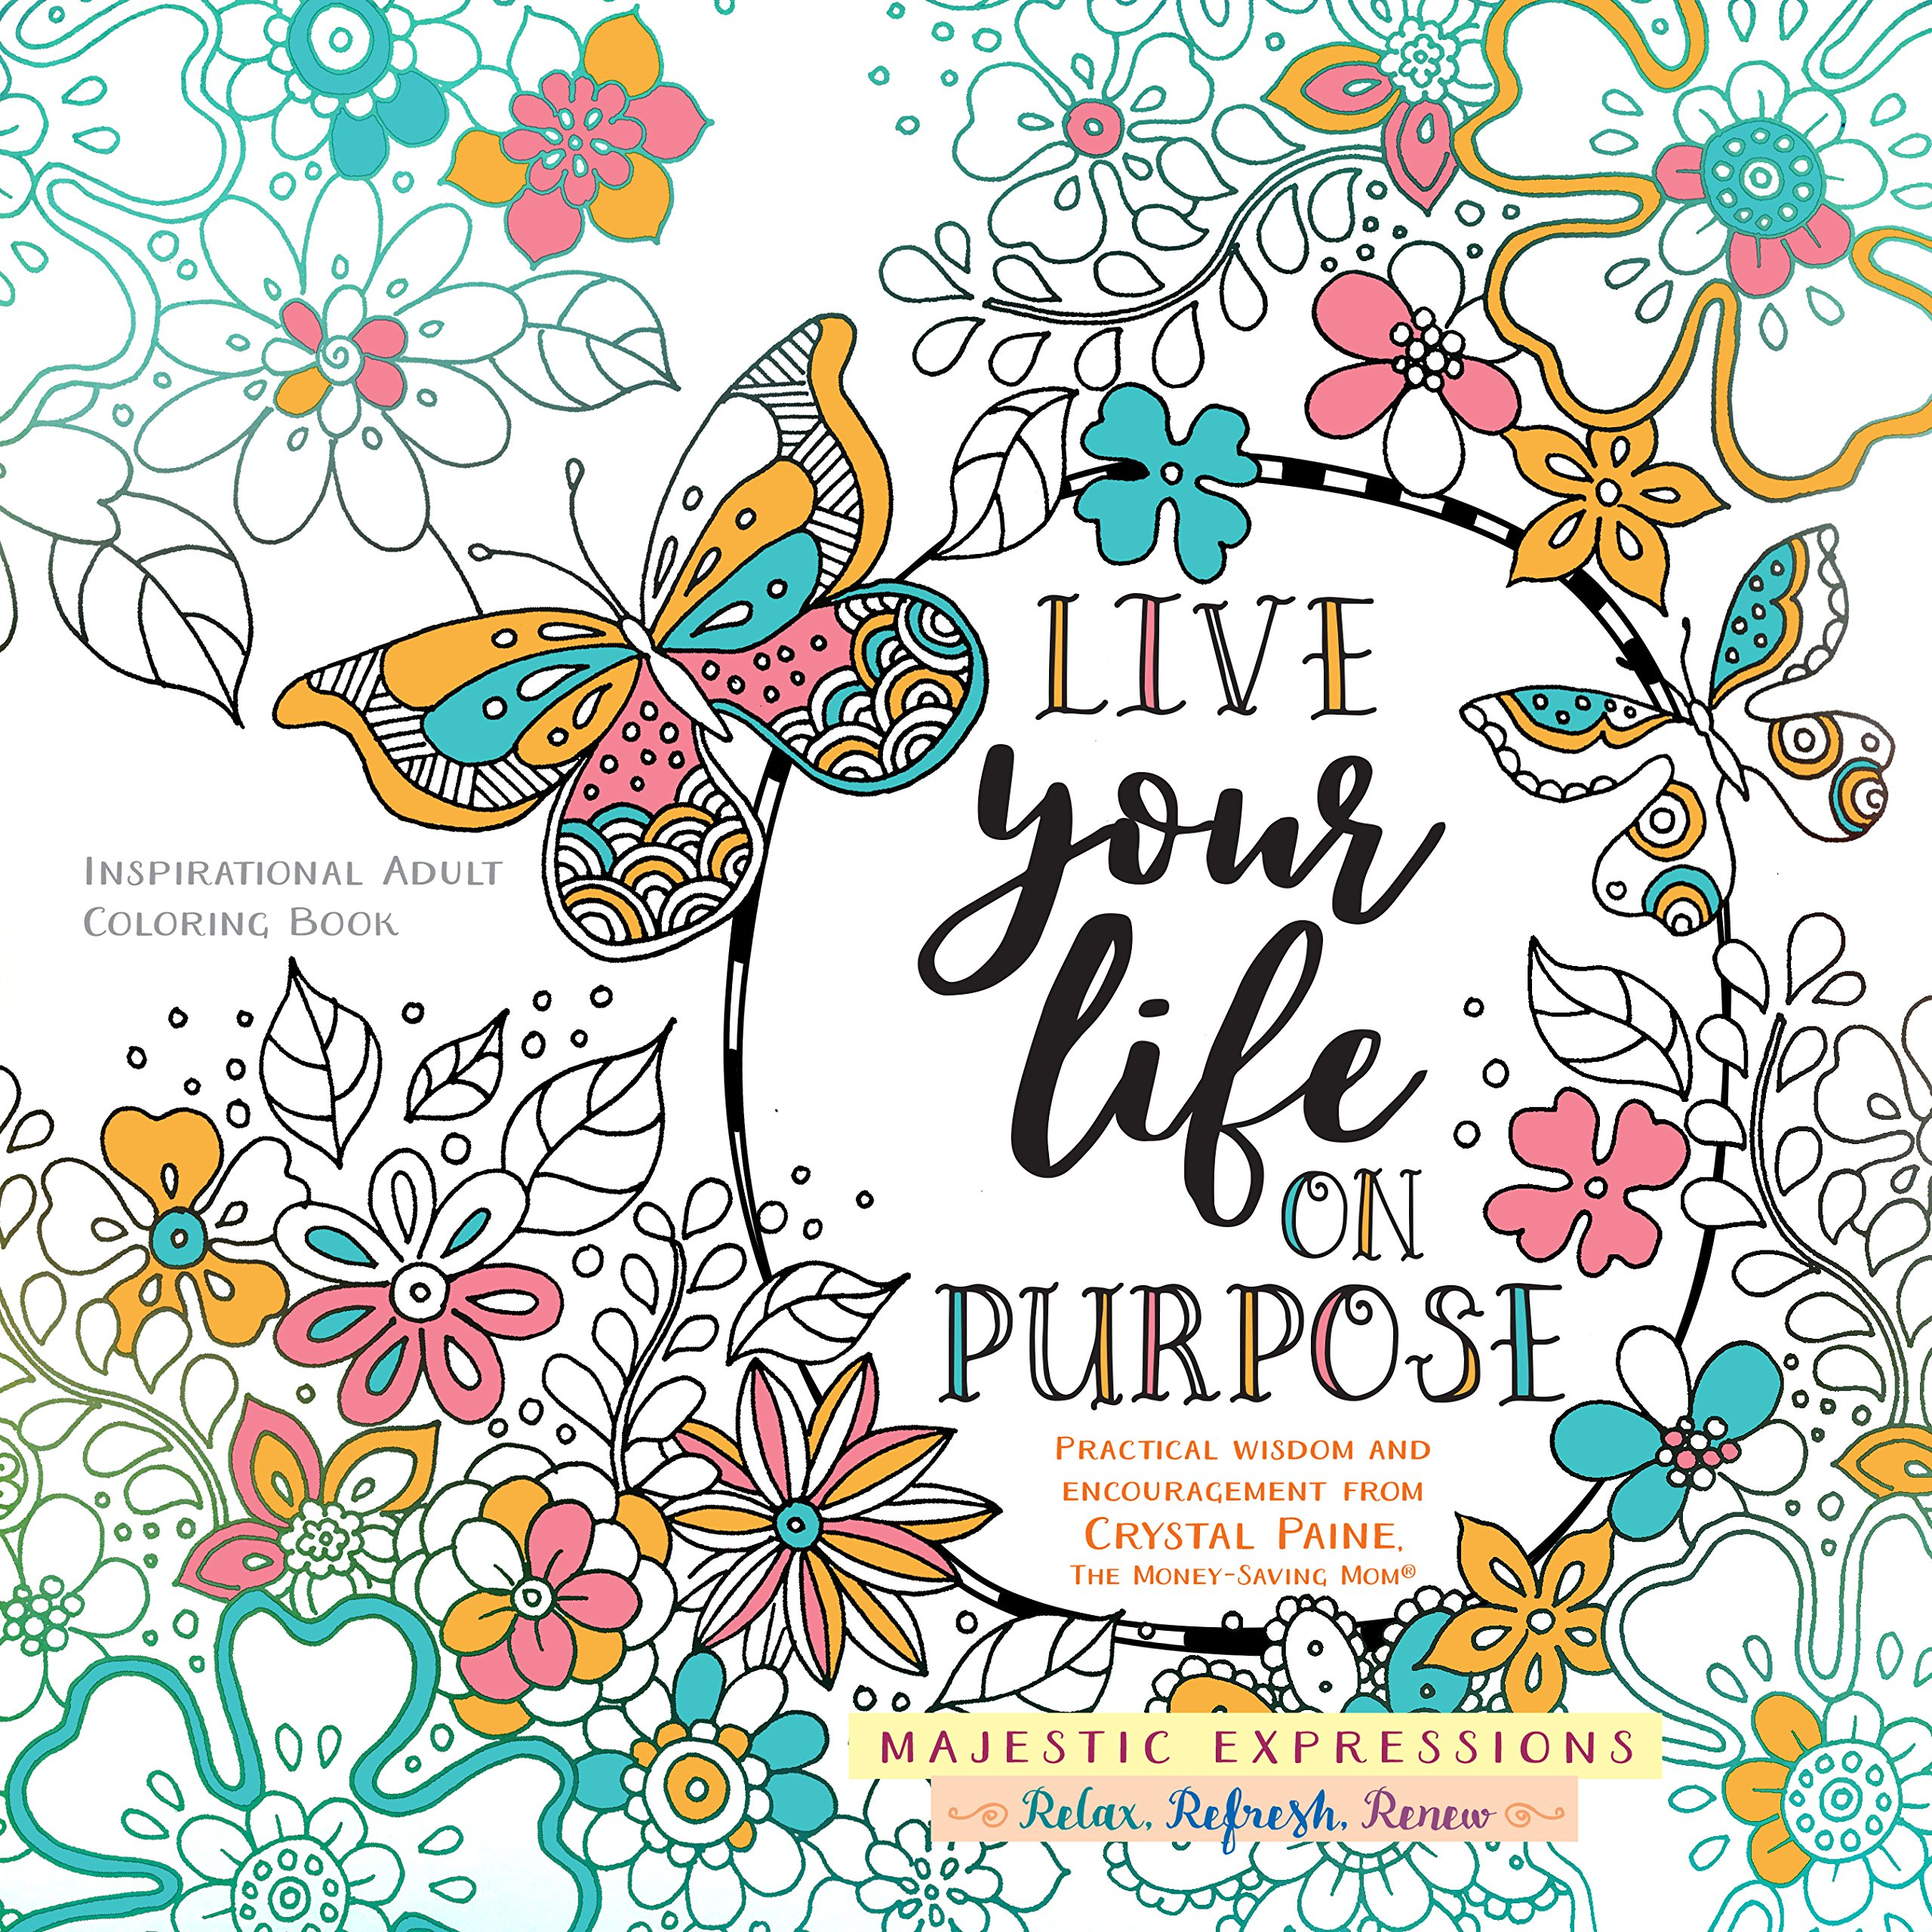 Coloring book inspirational - Amazon Com Live Your Life On Purpose Inspirational Adult Coloring Book Majestic Expressions 9781424553556 Crystal Paine Majestic Expressions Books